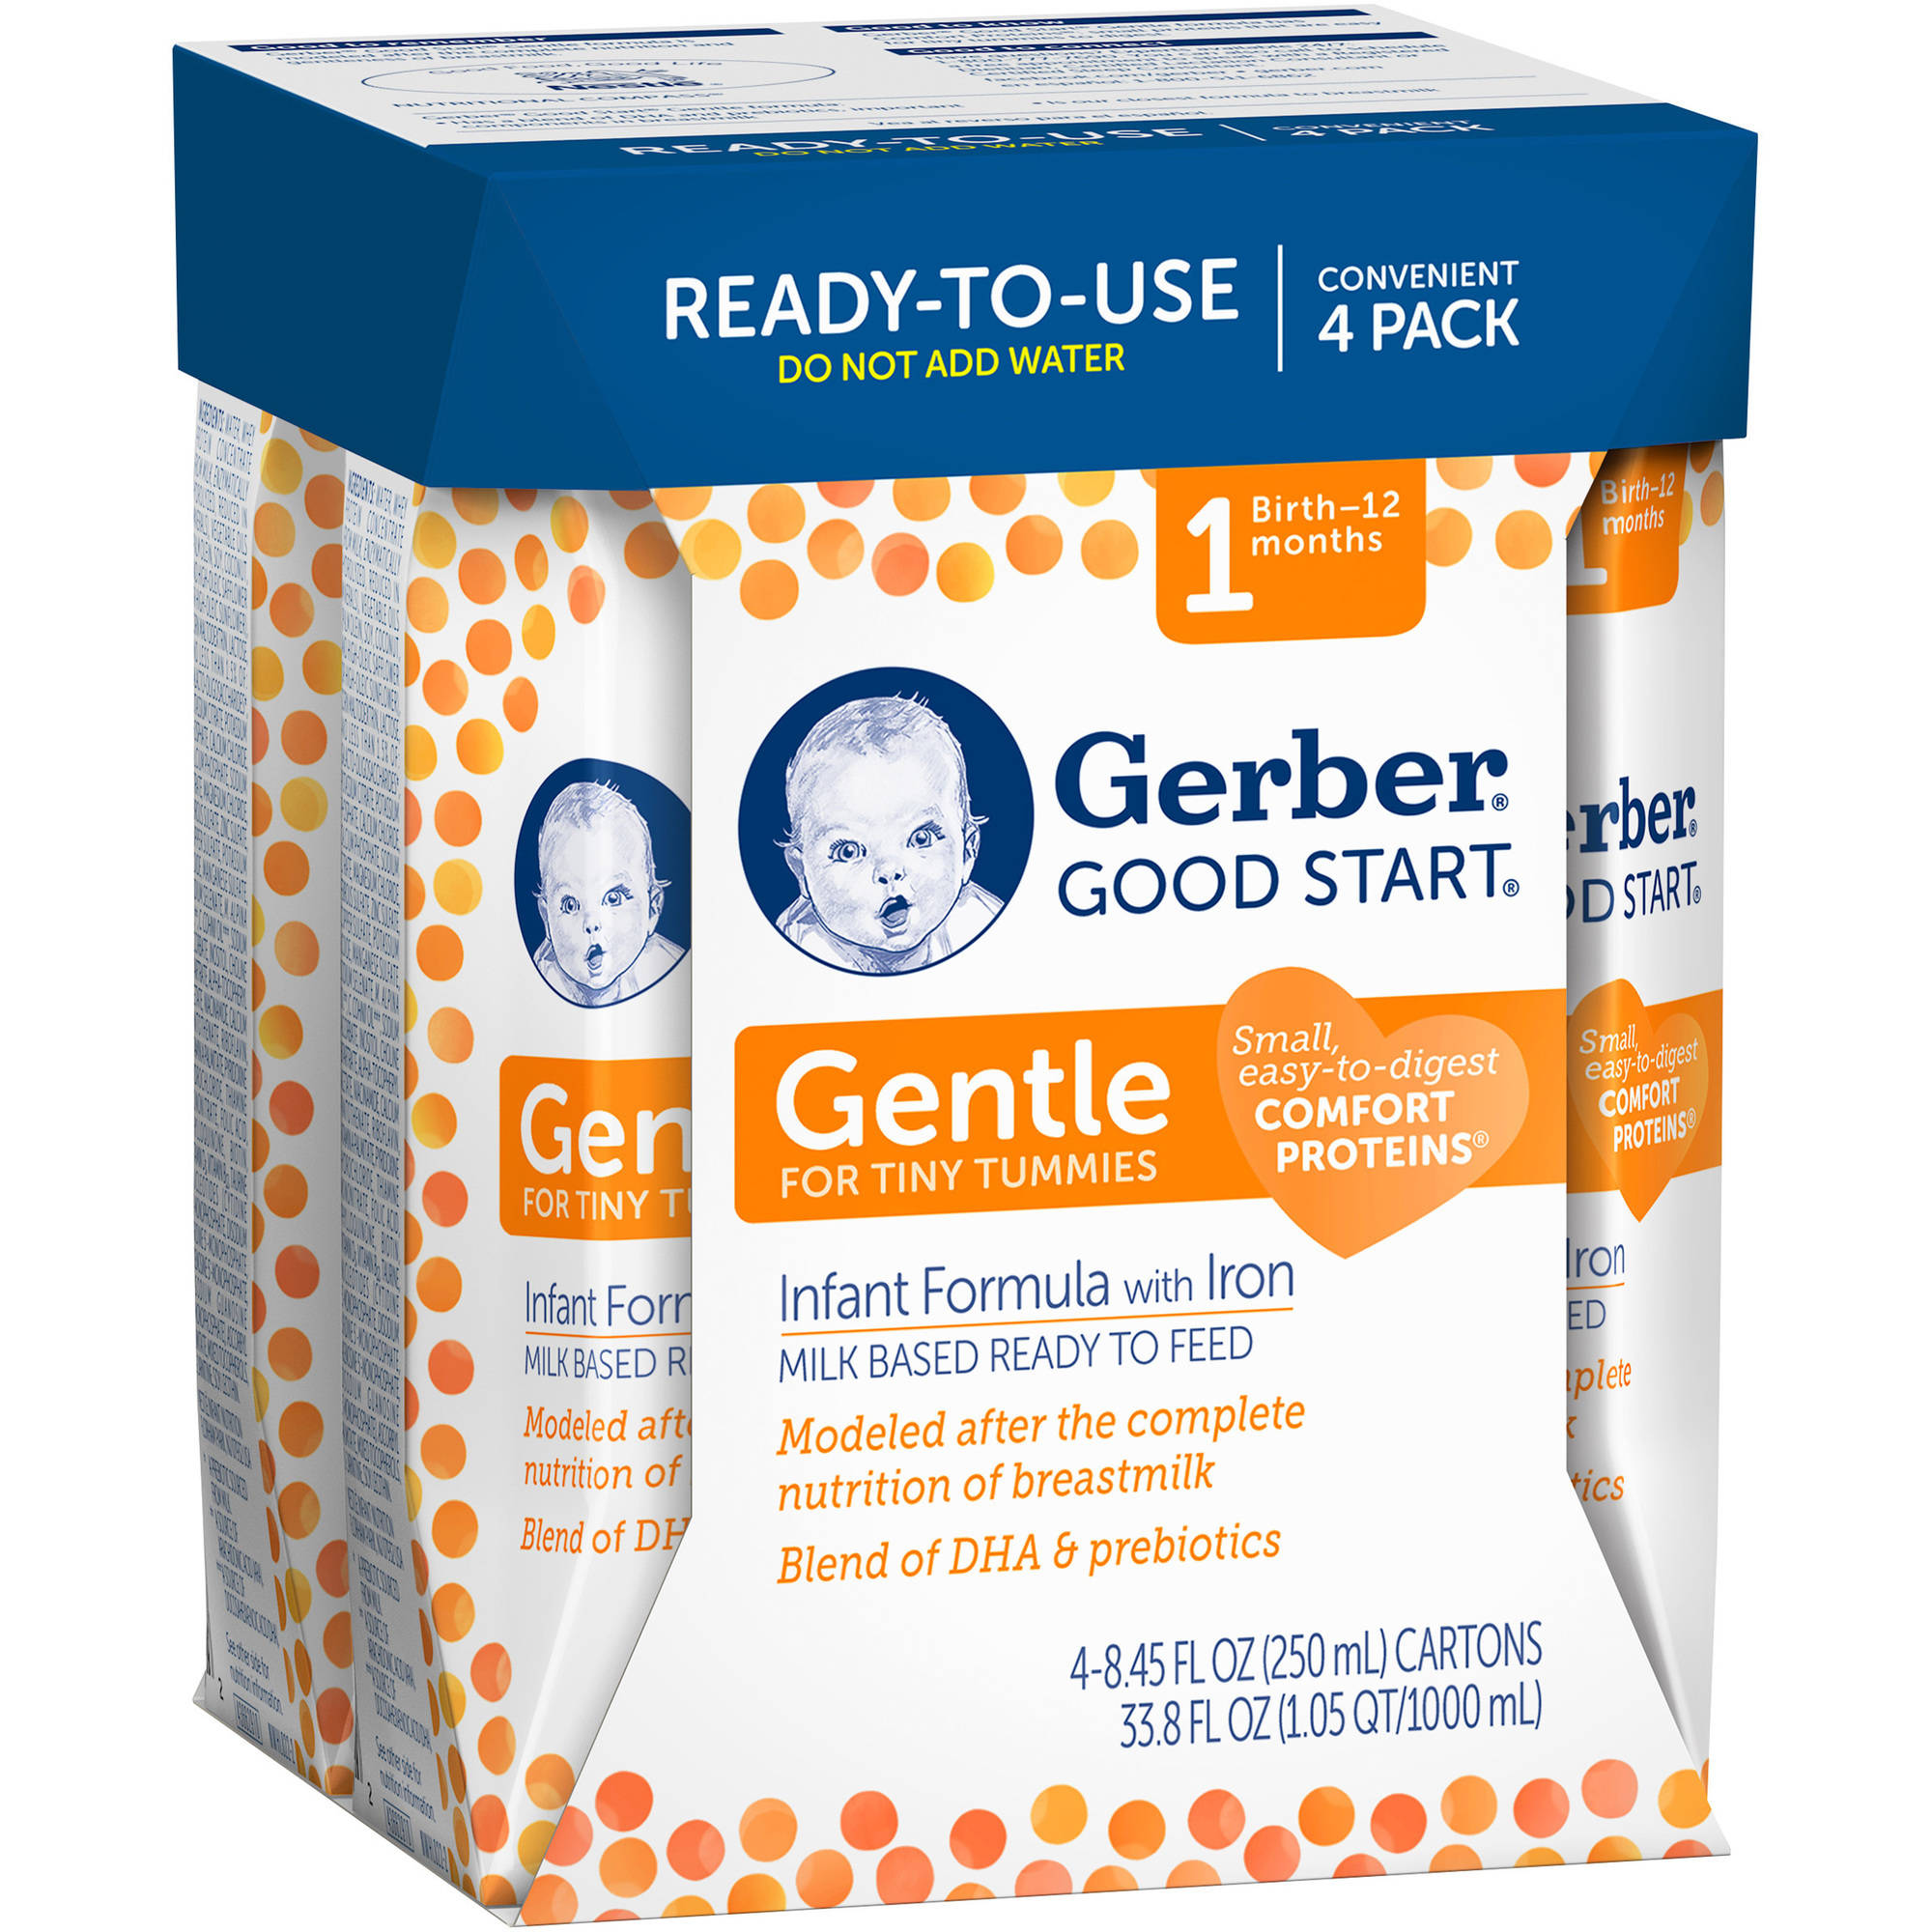 Gerber® Good Start® Gentle Ready to Feed Infant Formula, 8.45 Ounce, 4 Pack